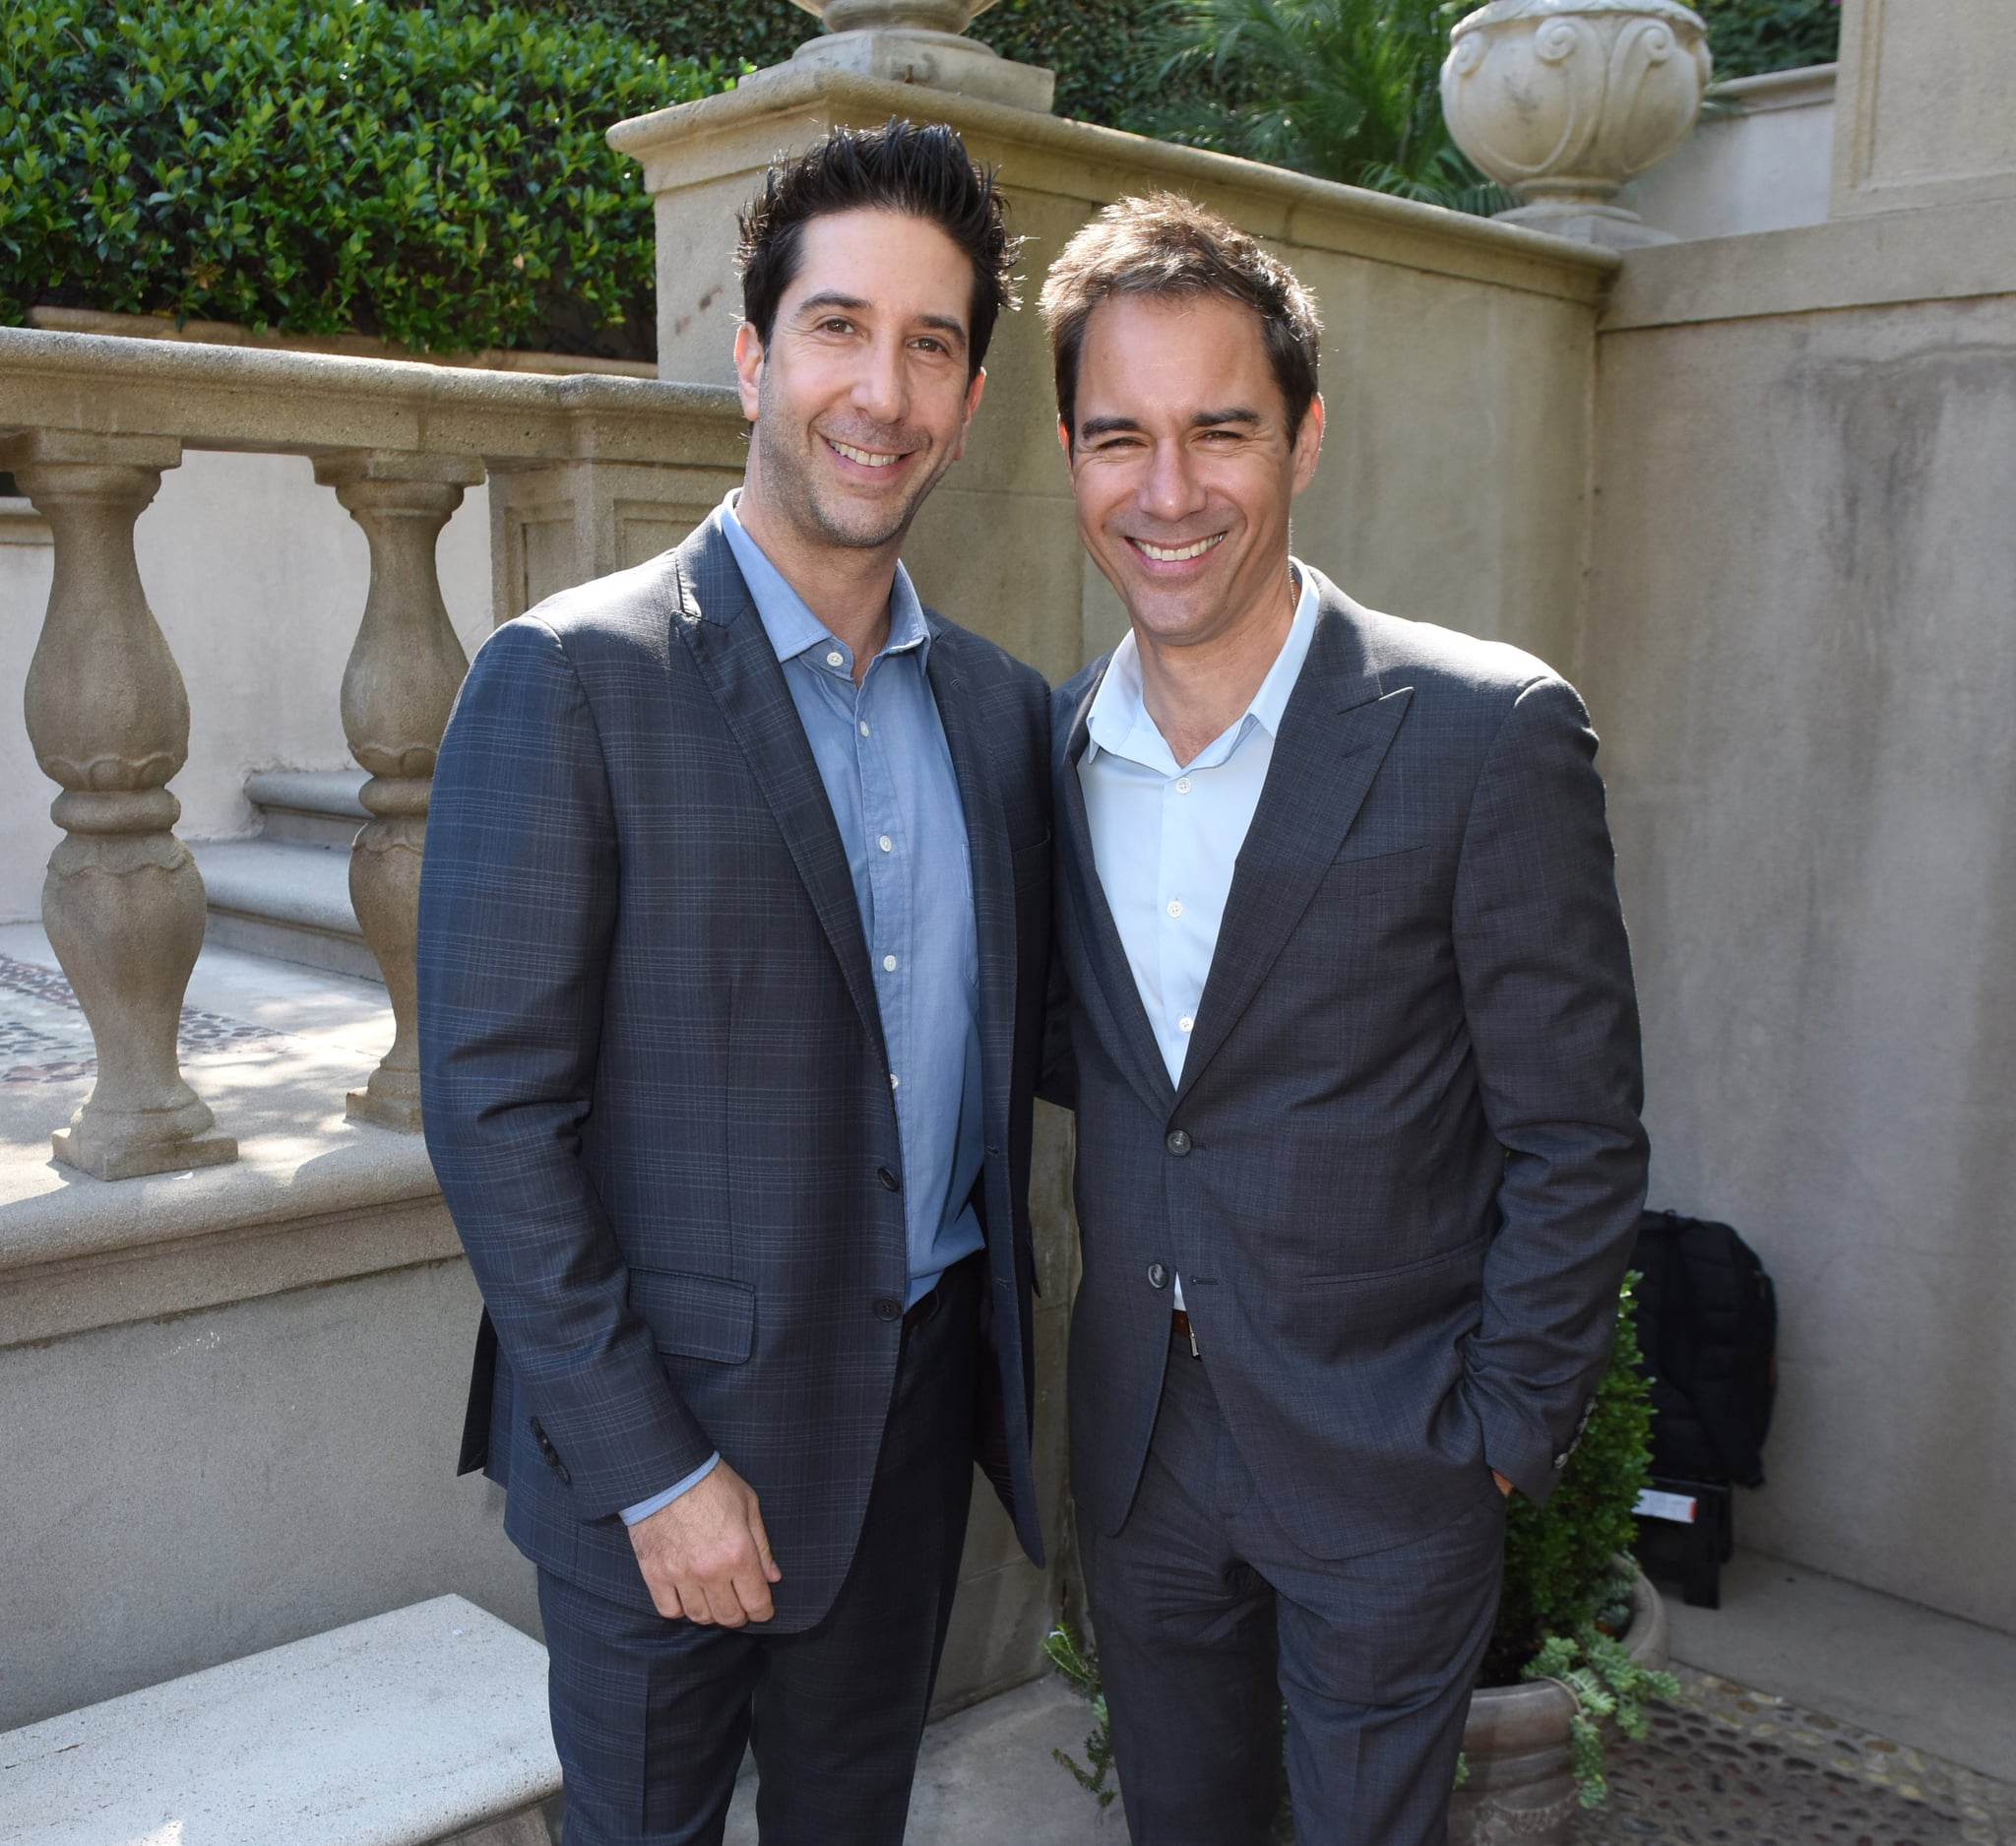 BEVERLY HILLS, CA - OCTOBER 08:  David Schwimmer and Eric McCormack attend The Rape Foundation's Annual Brunch on October 8, 2017 in Beverly Hills, California  (Photo by Vivien Killilea/Getty Images for The Rape Foundation)